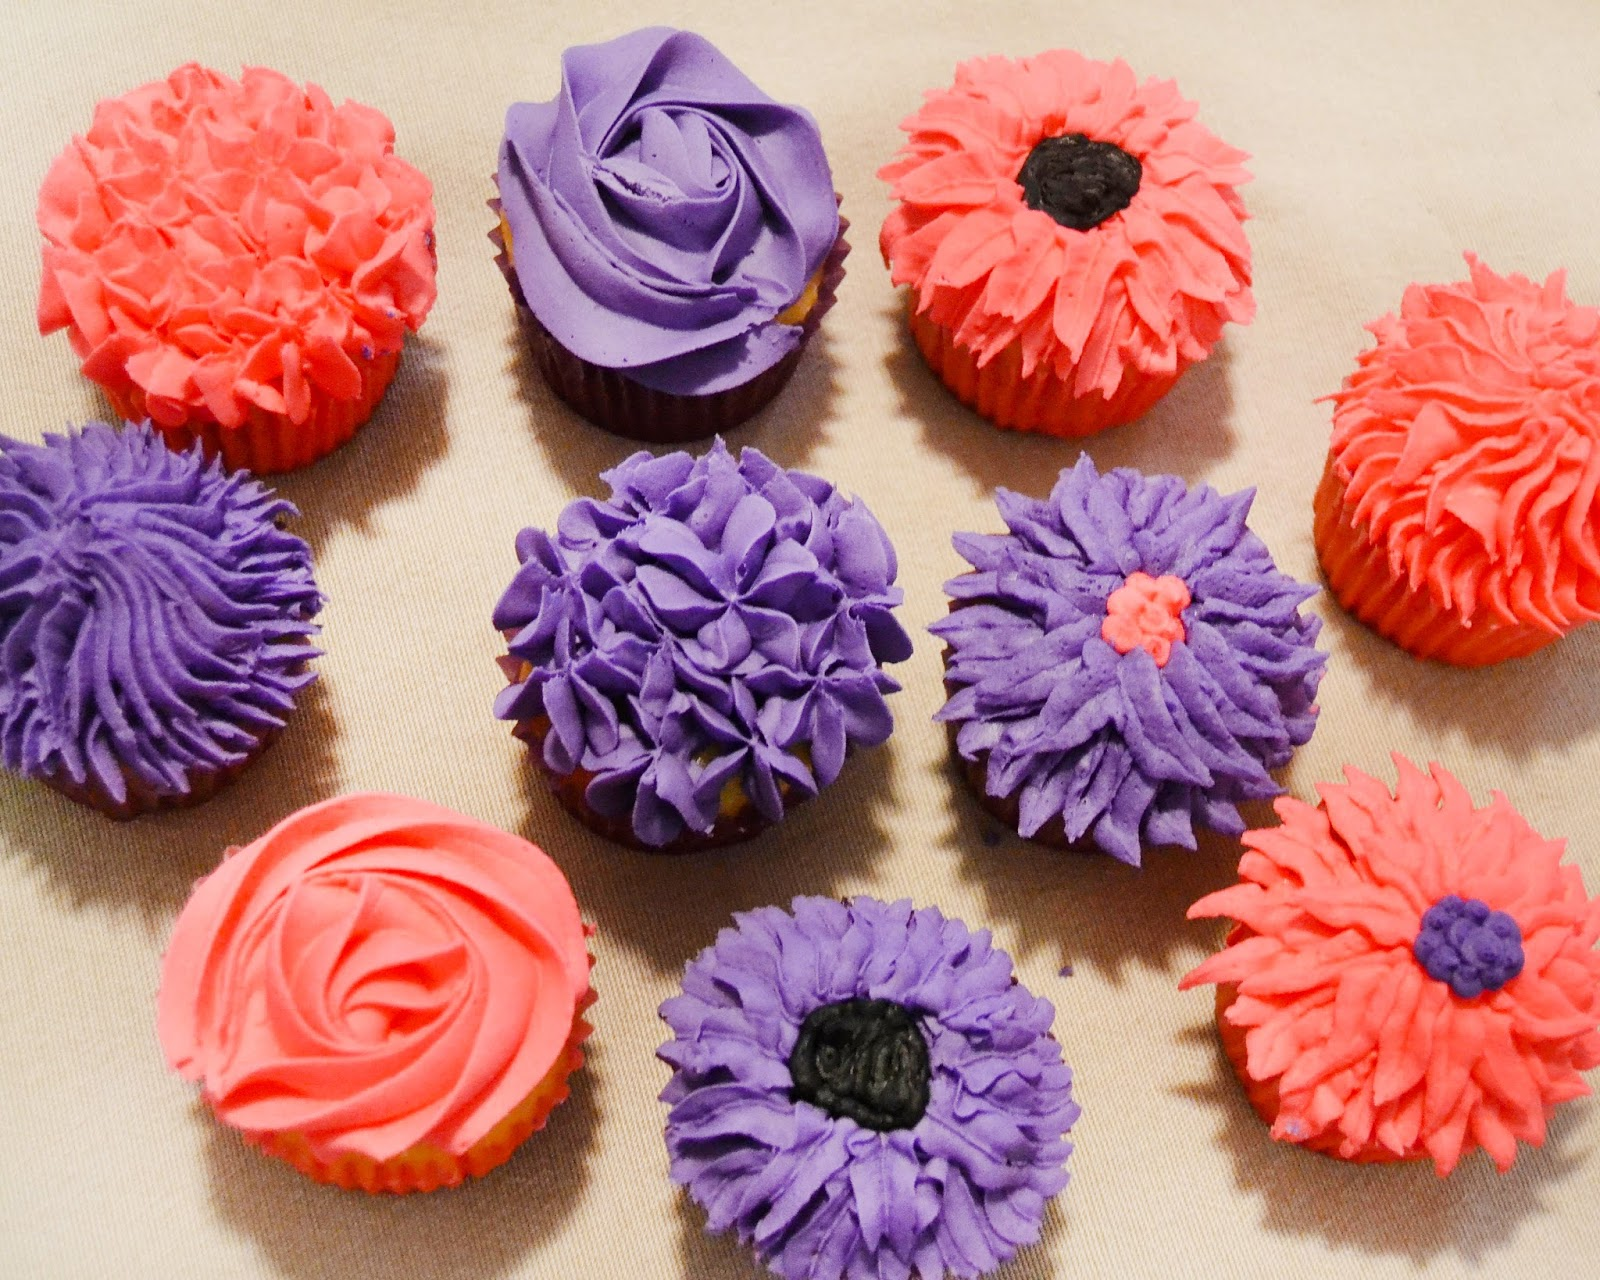 For the love of food diy flower cupcake bouquet you can create a cupcake bouquet many different ways for this tutorial we used both flower decorated cupcakes and colorful tissue paper petals and izmirmasajfo